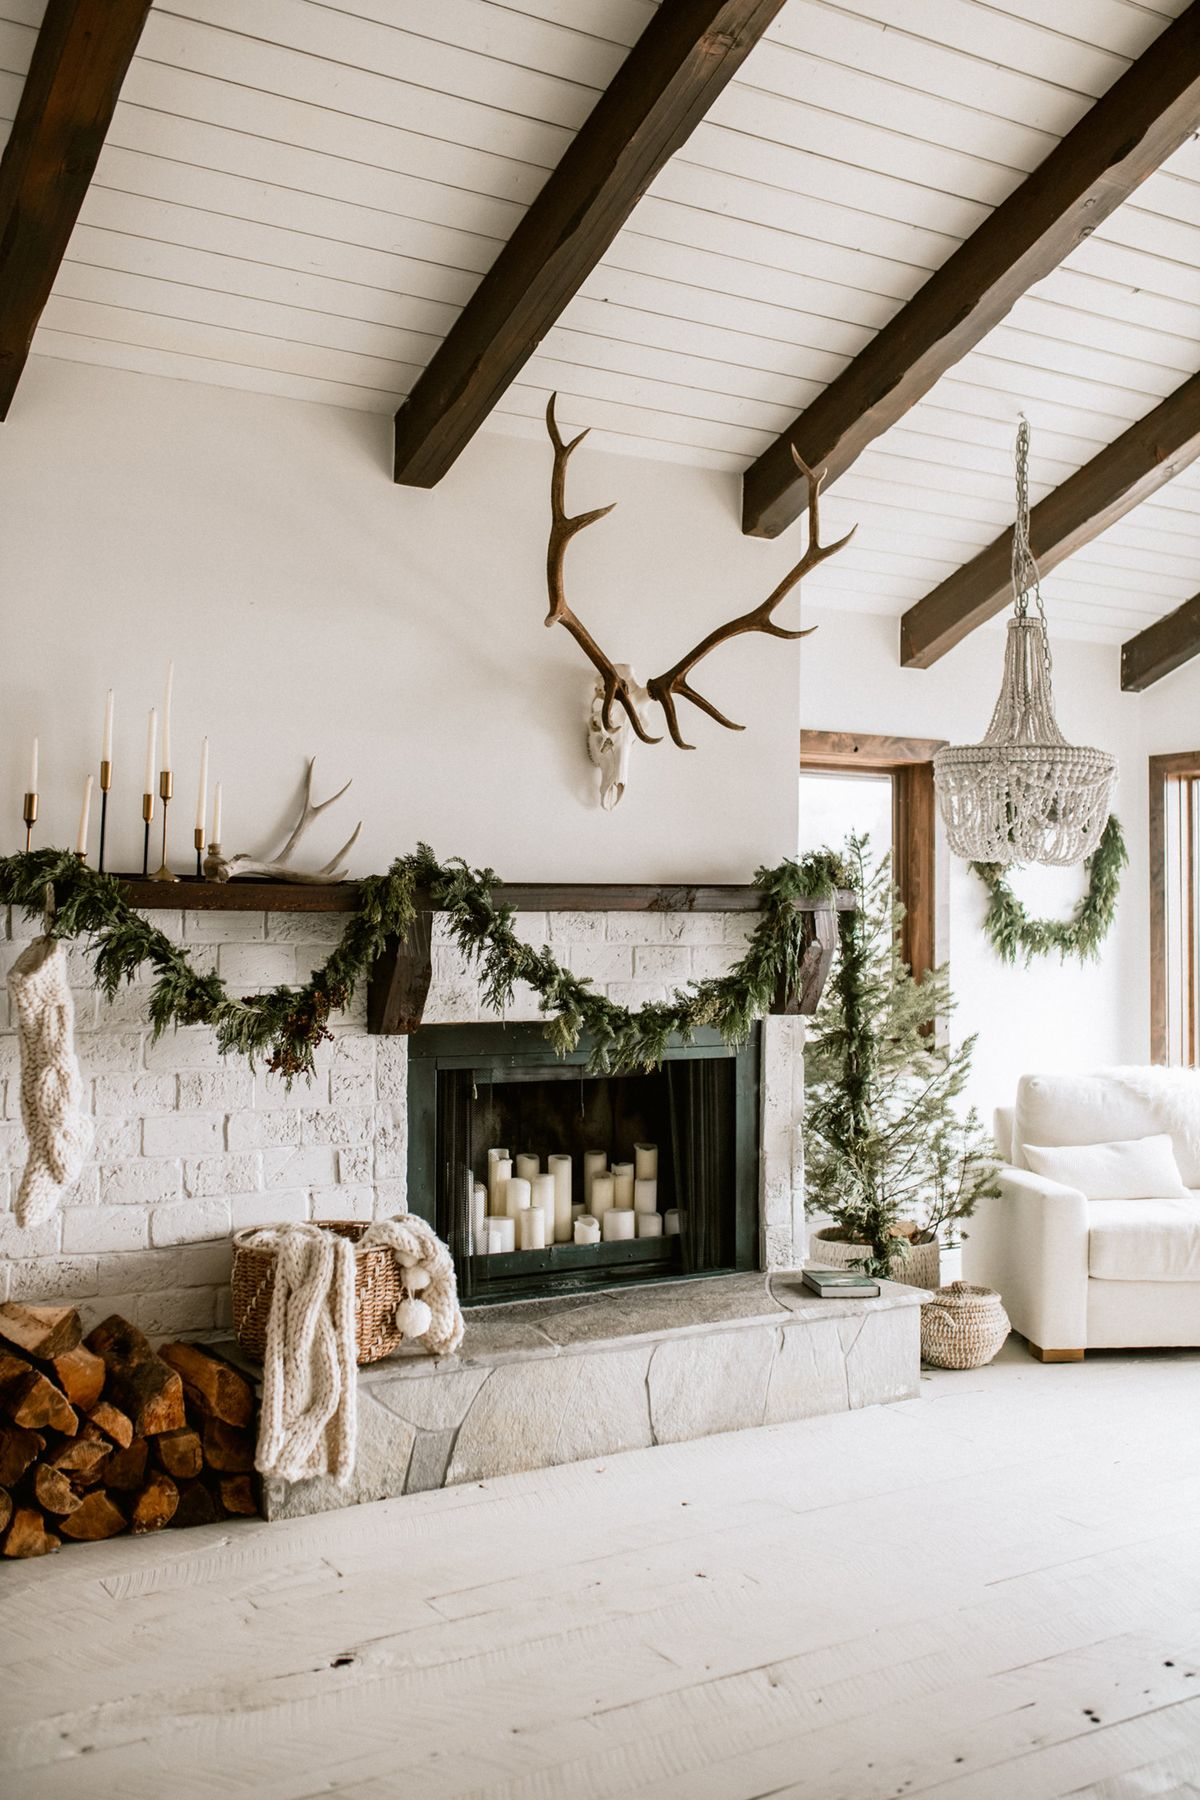 Our Favorite Holiday Home Decor Ideas This Year Are All About Simplicity Coco Kelley Ranch Decor Country House Decor Rustic House